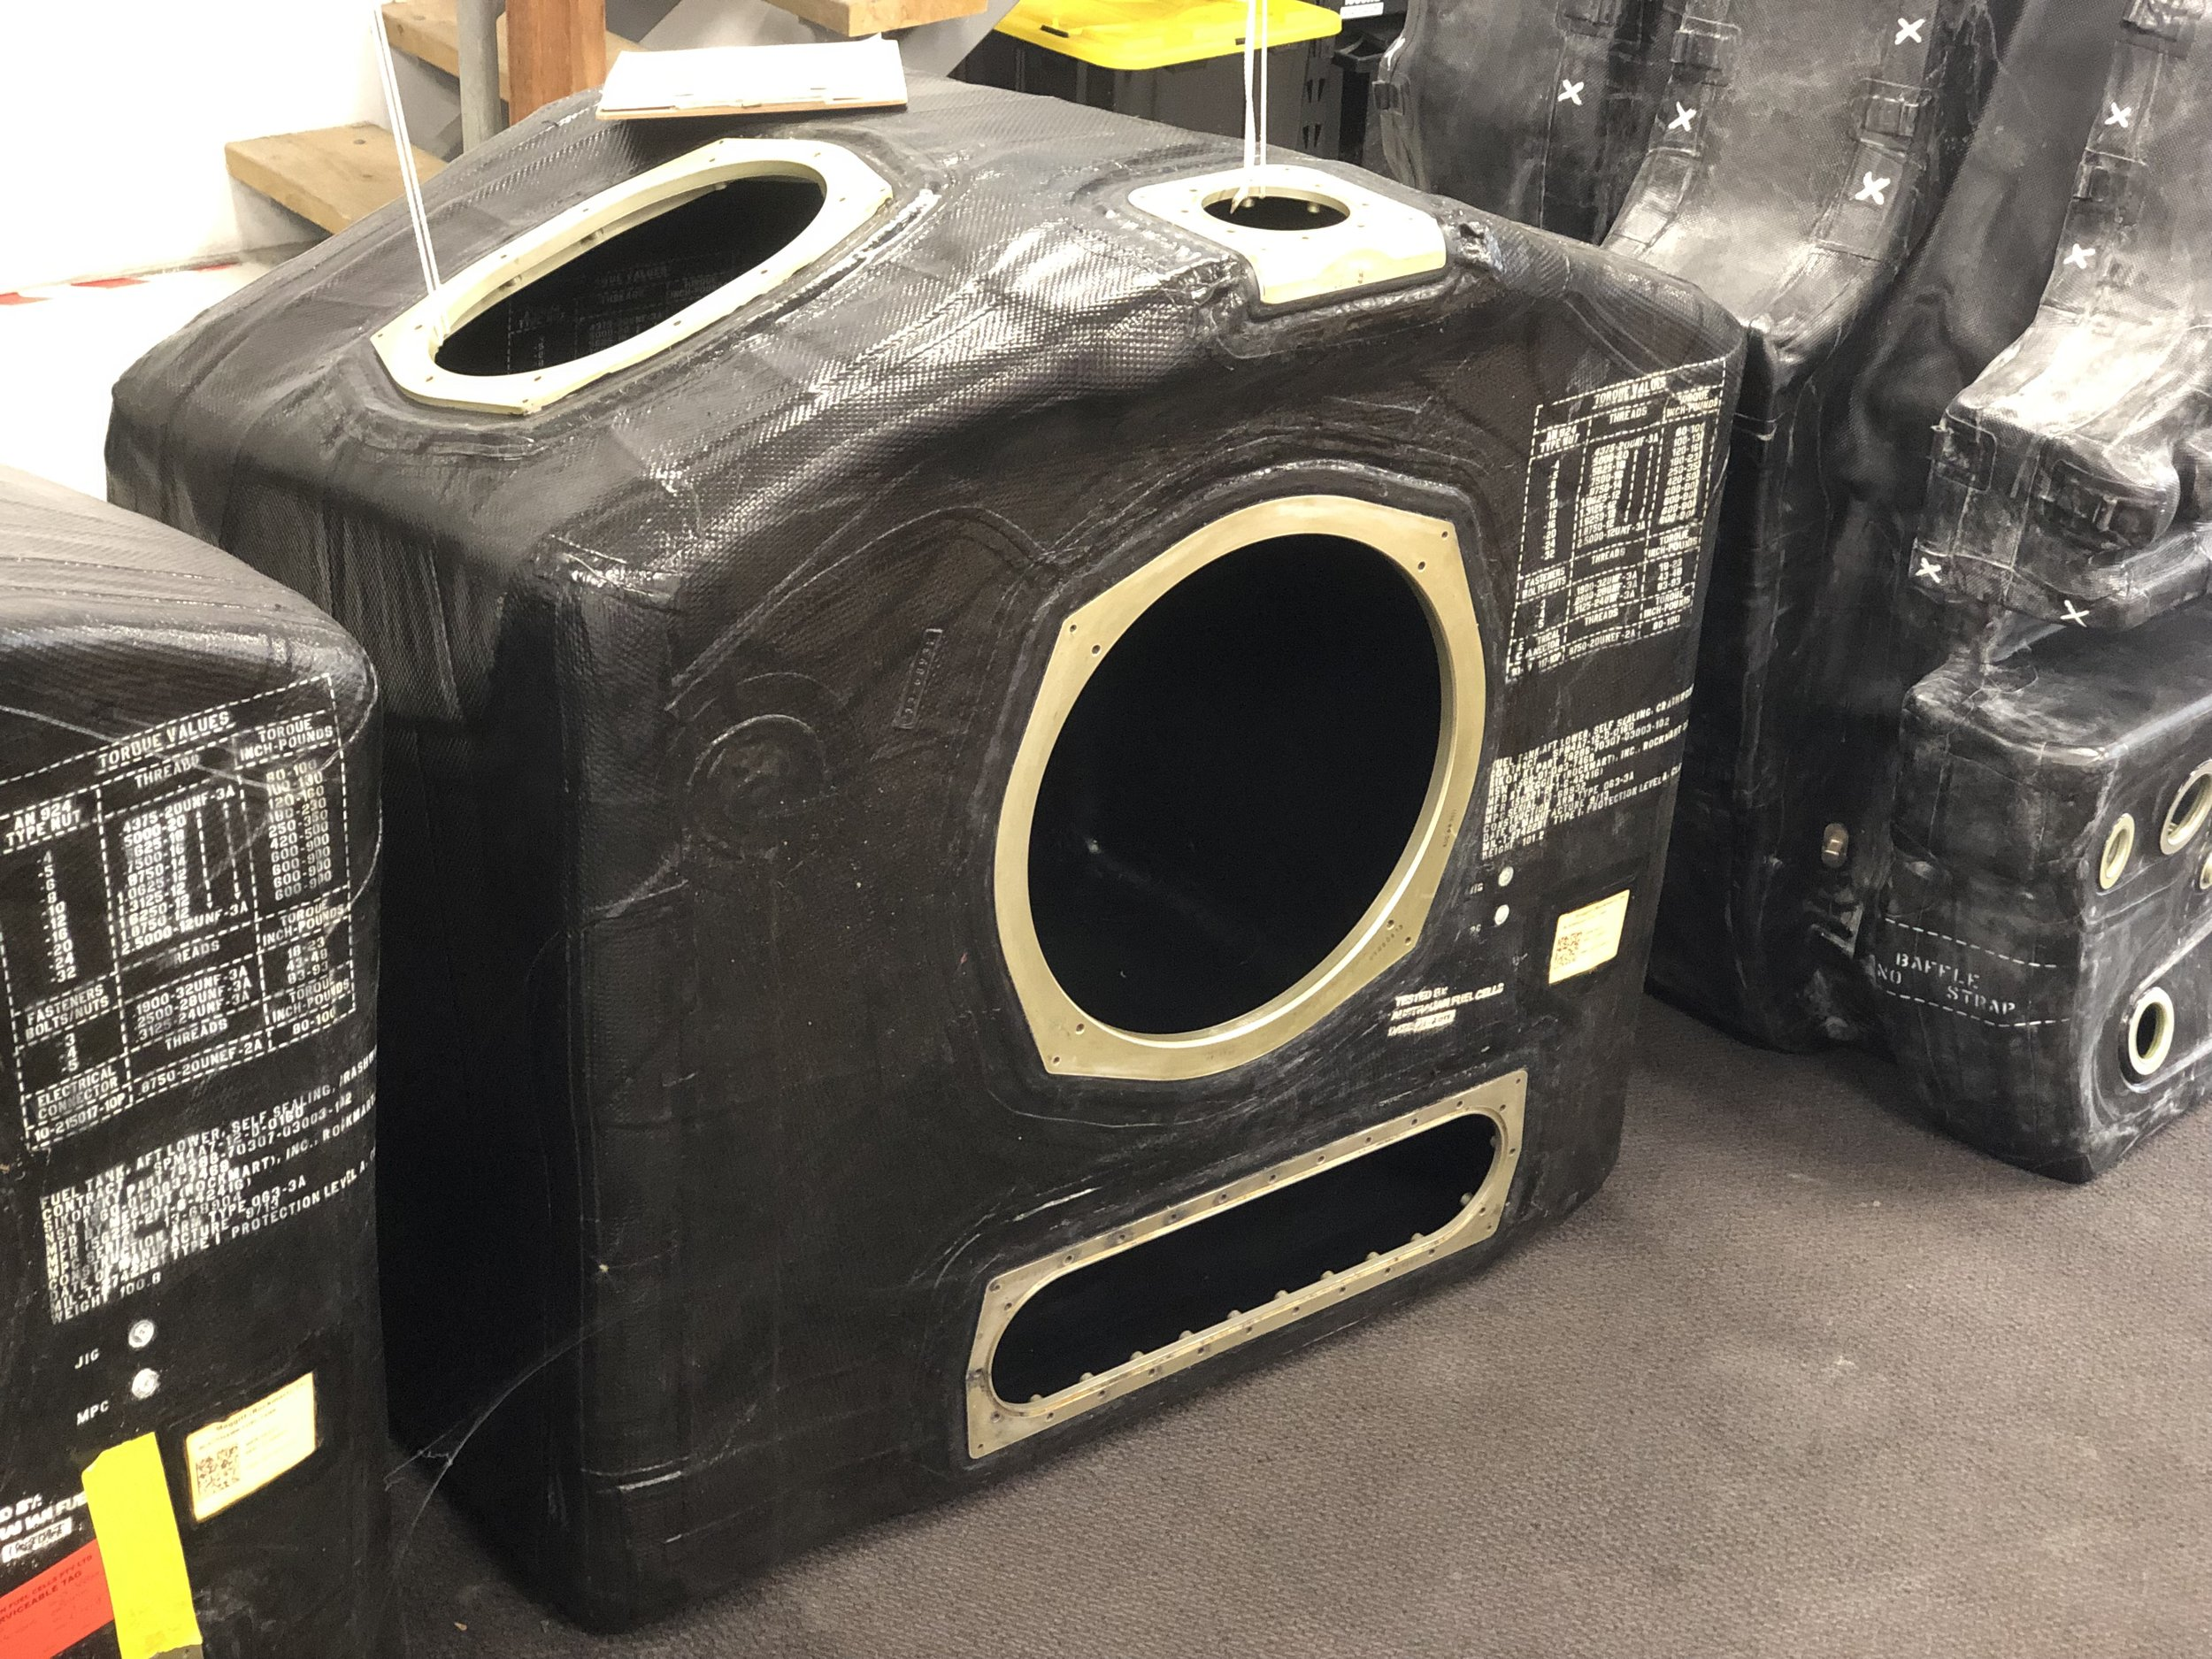 UH-60 Blackhawk helicopter fuel cell removed from AFC storage for scheduled maintenance activities.